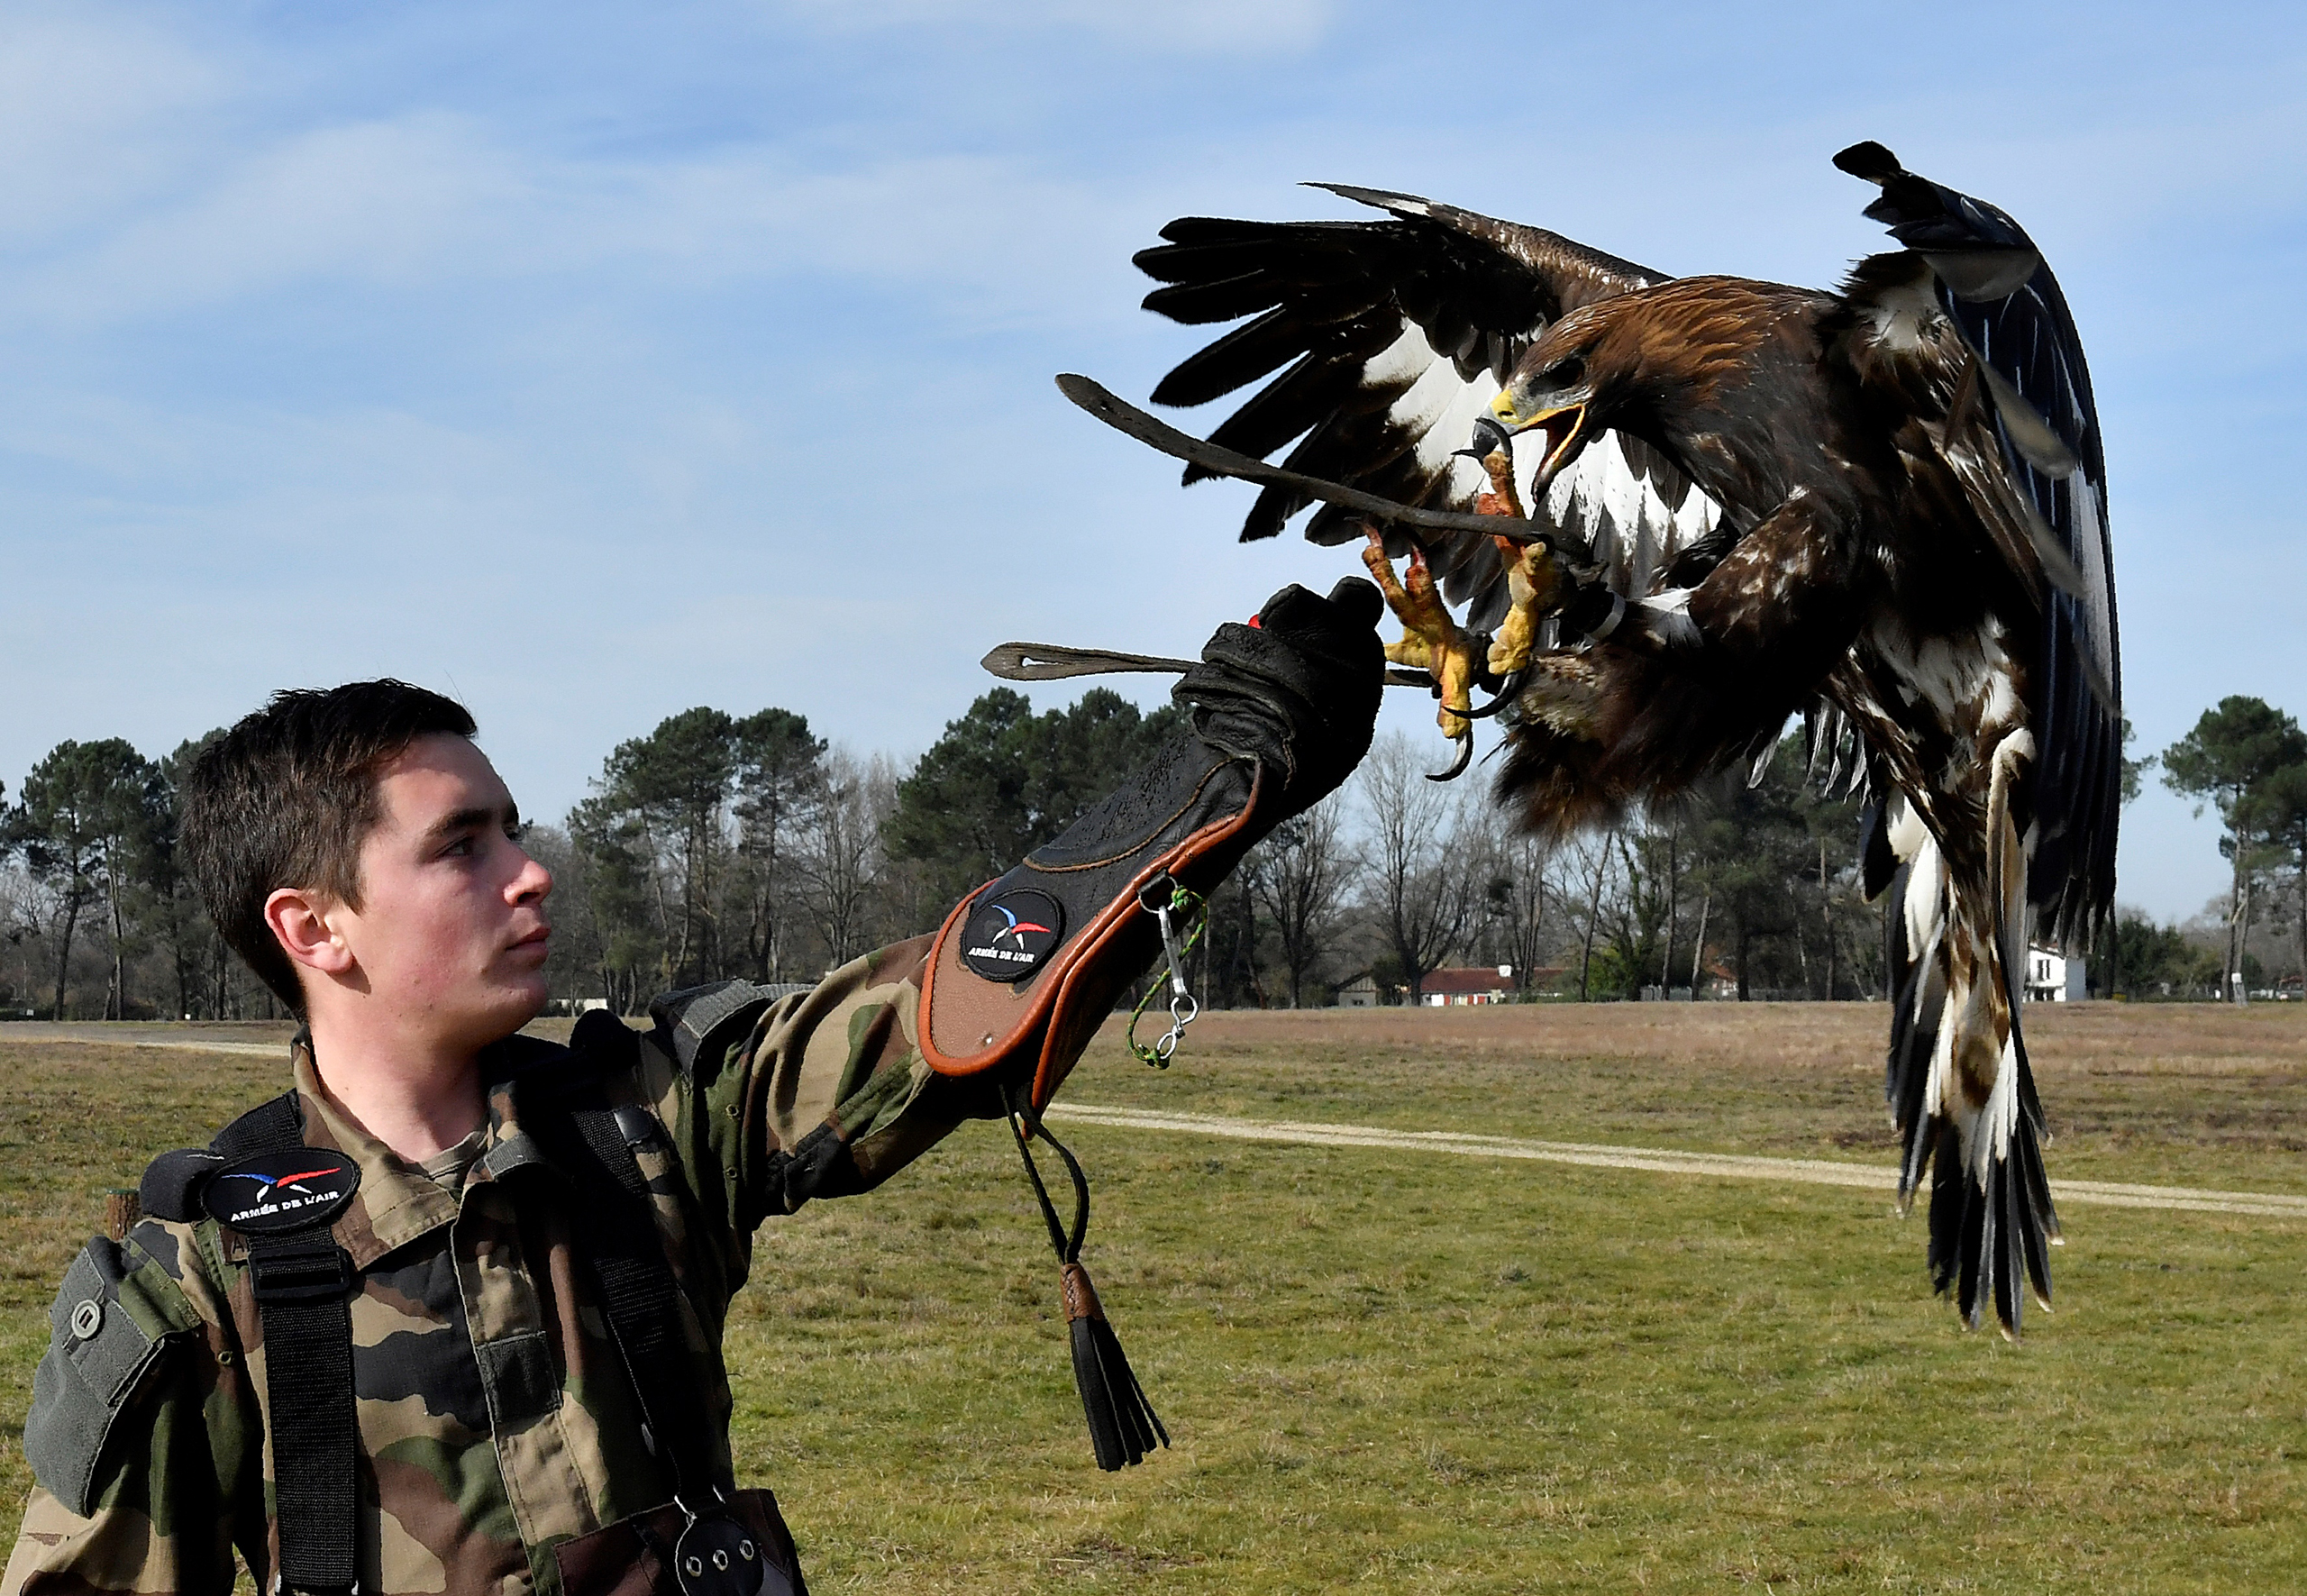 A soldier trains an eagle during a military exercise at the Mont-de-Marsan airbase in southwestern France on Feb. 10, 2017.